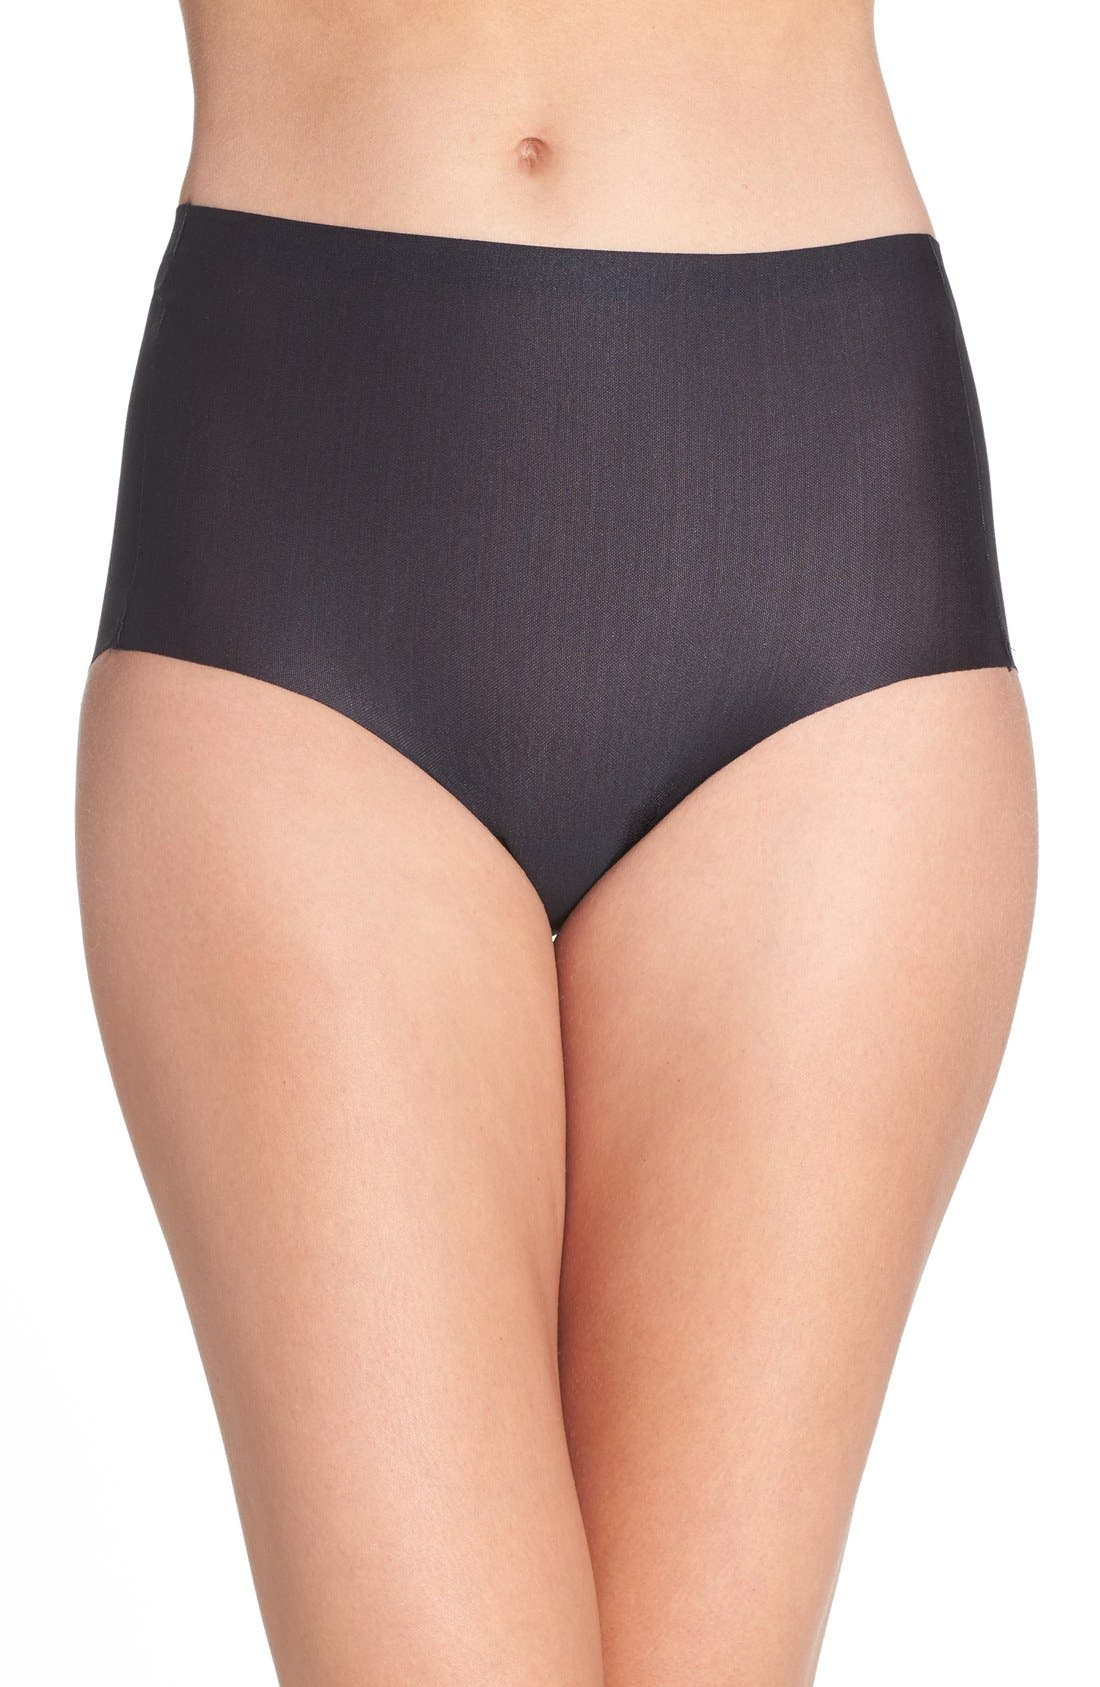 High Waist Smoothing Briefs,                             Main thumbnail 1, color,                             BLACK